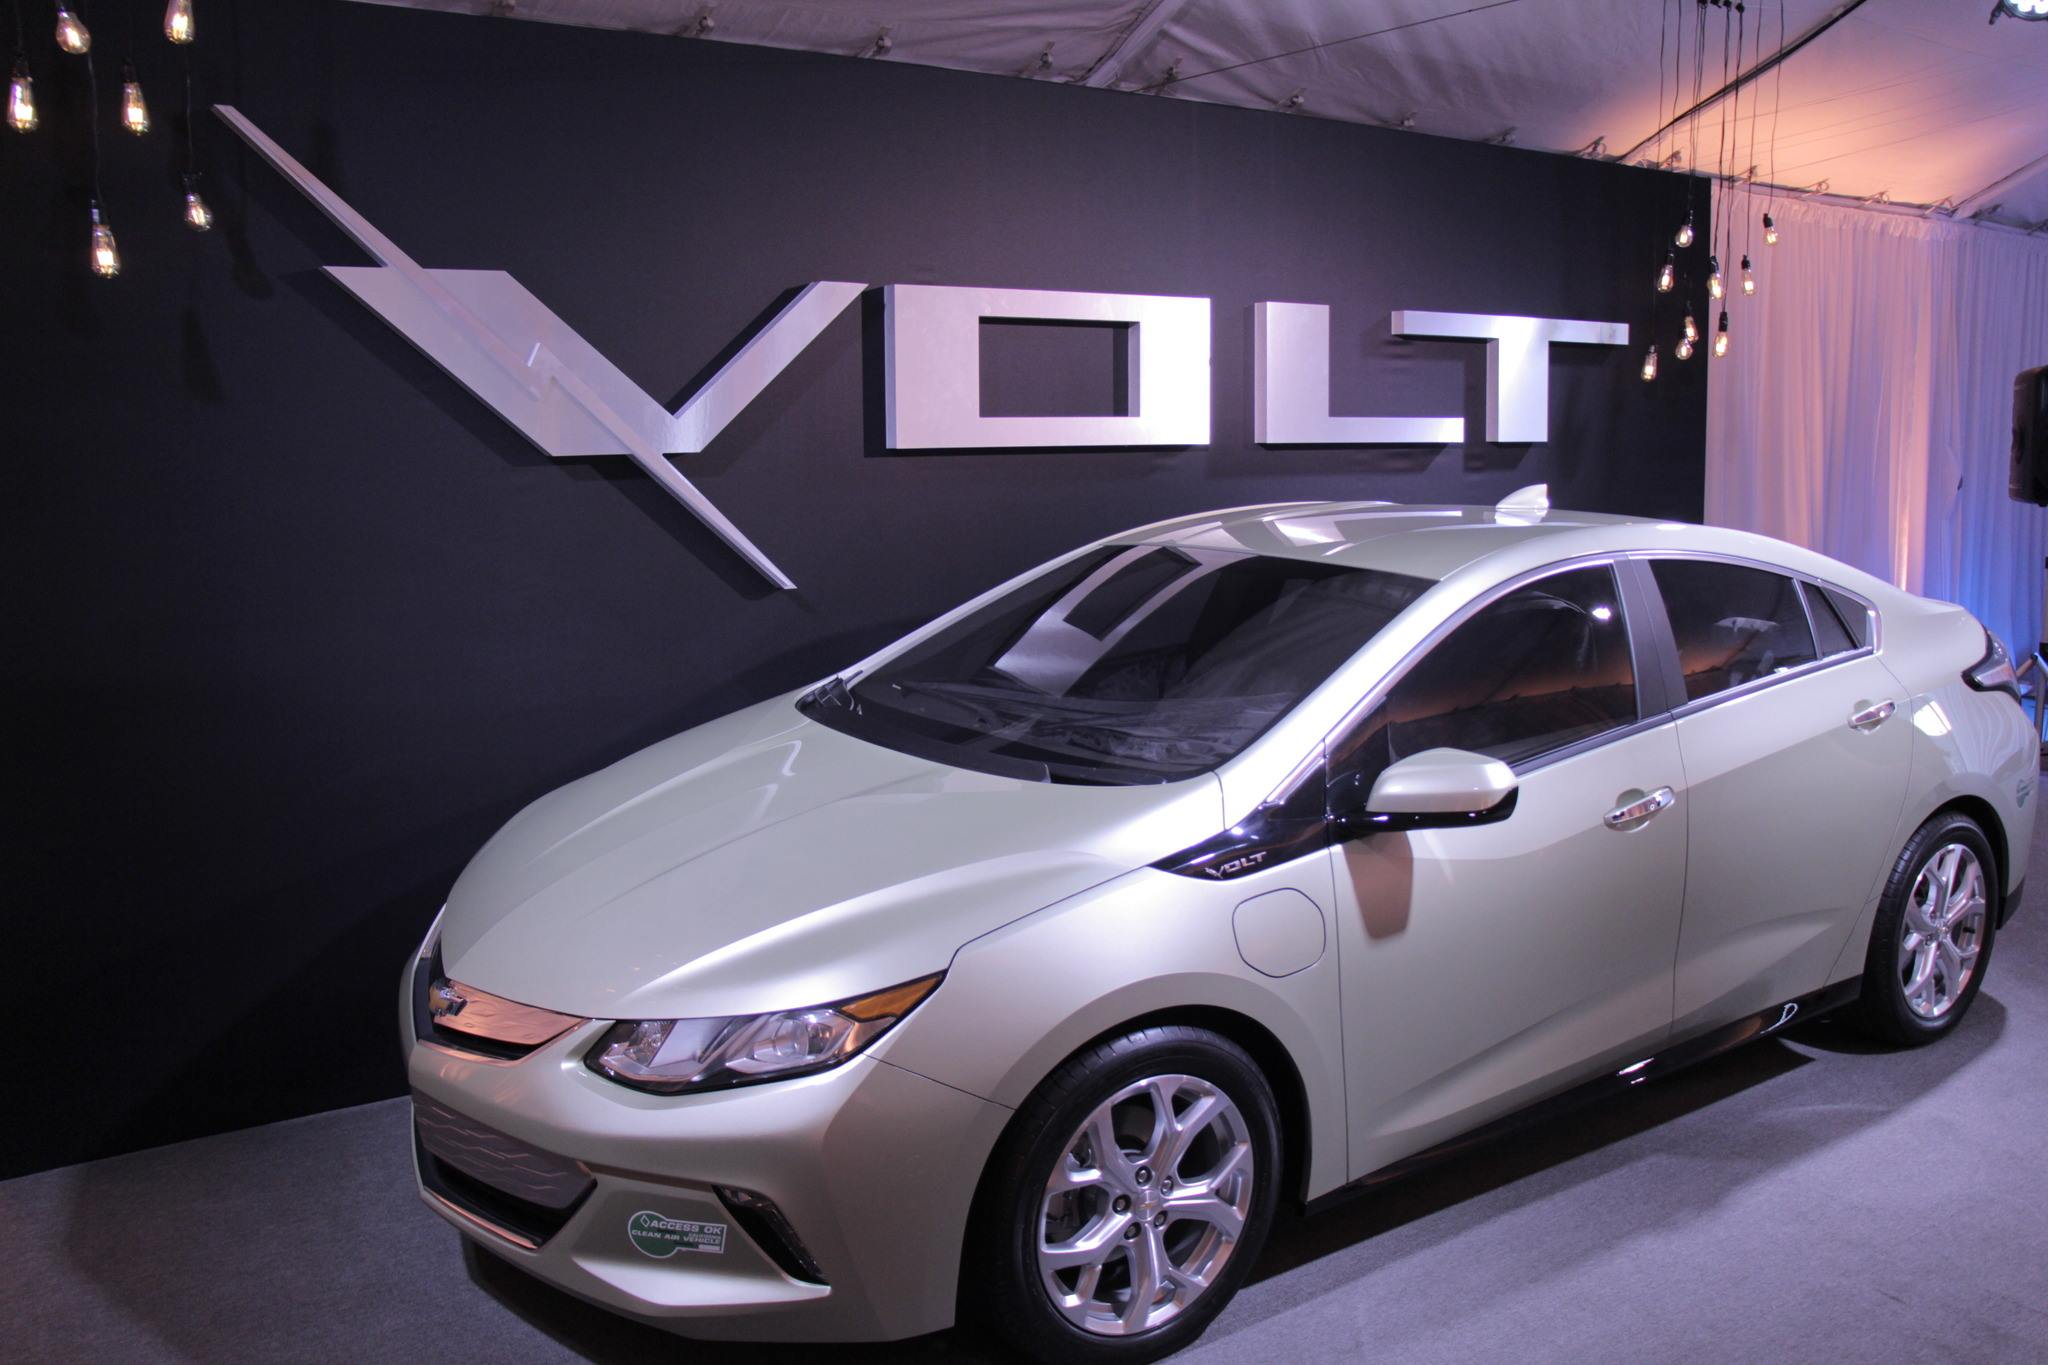 Chevrolet Volt 2016 HD wallpapers free download